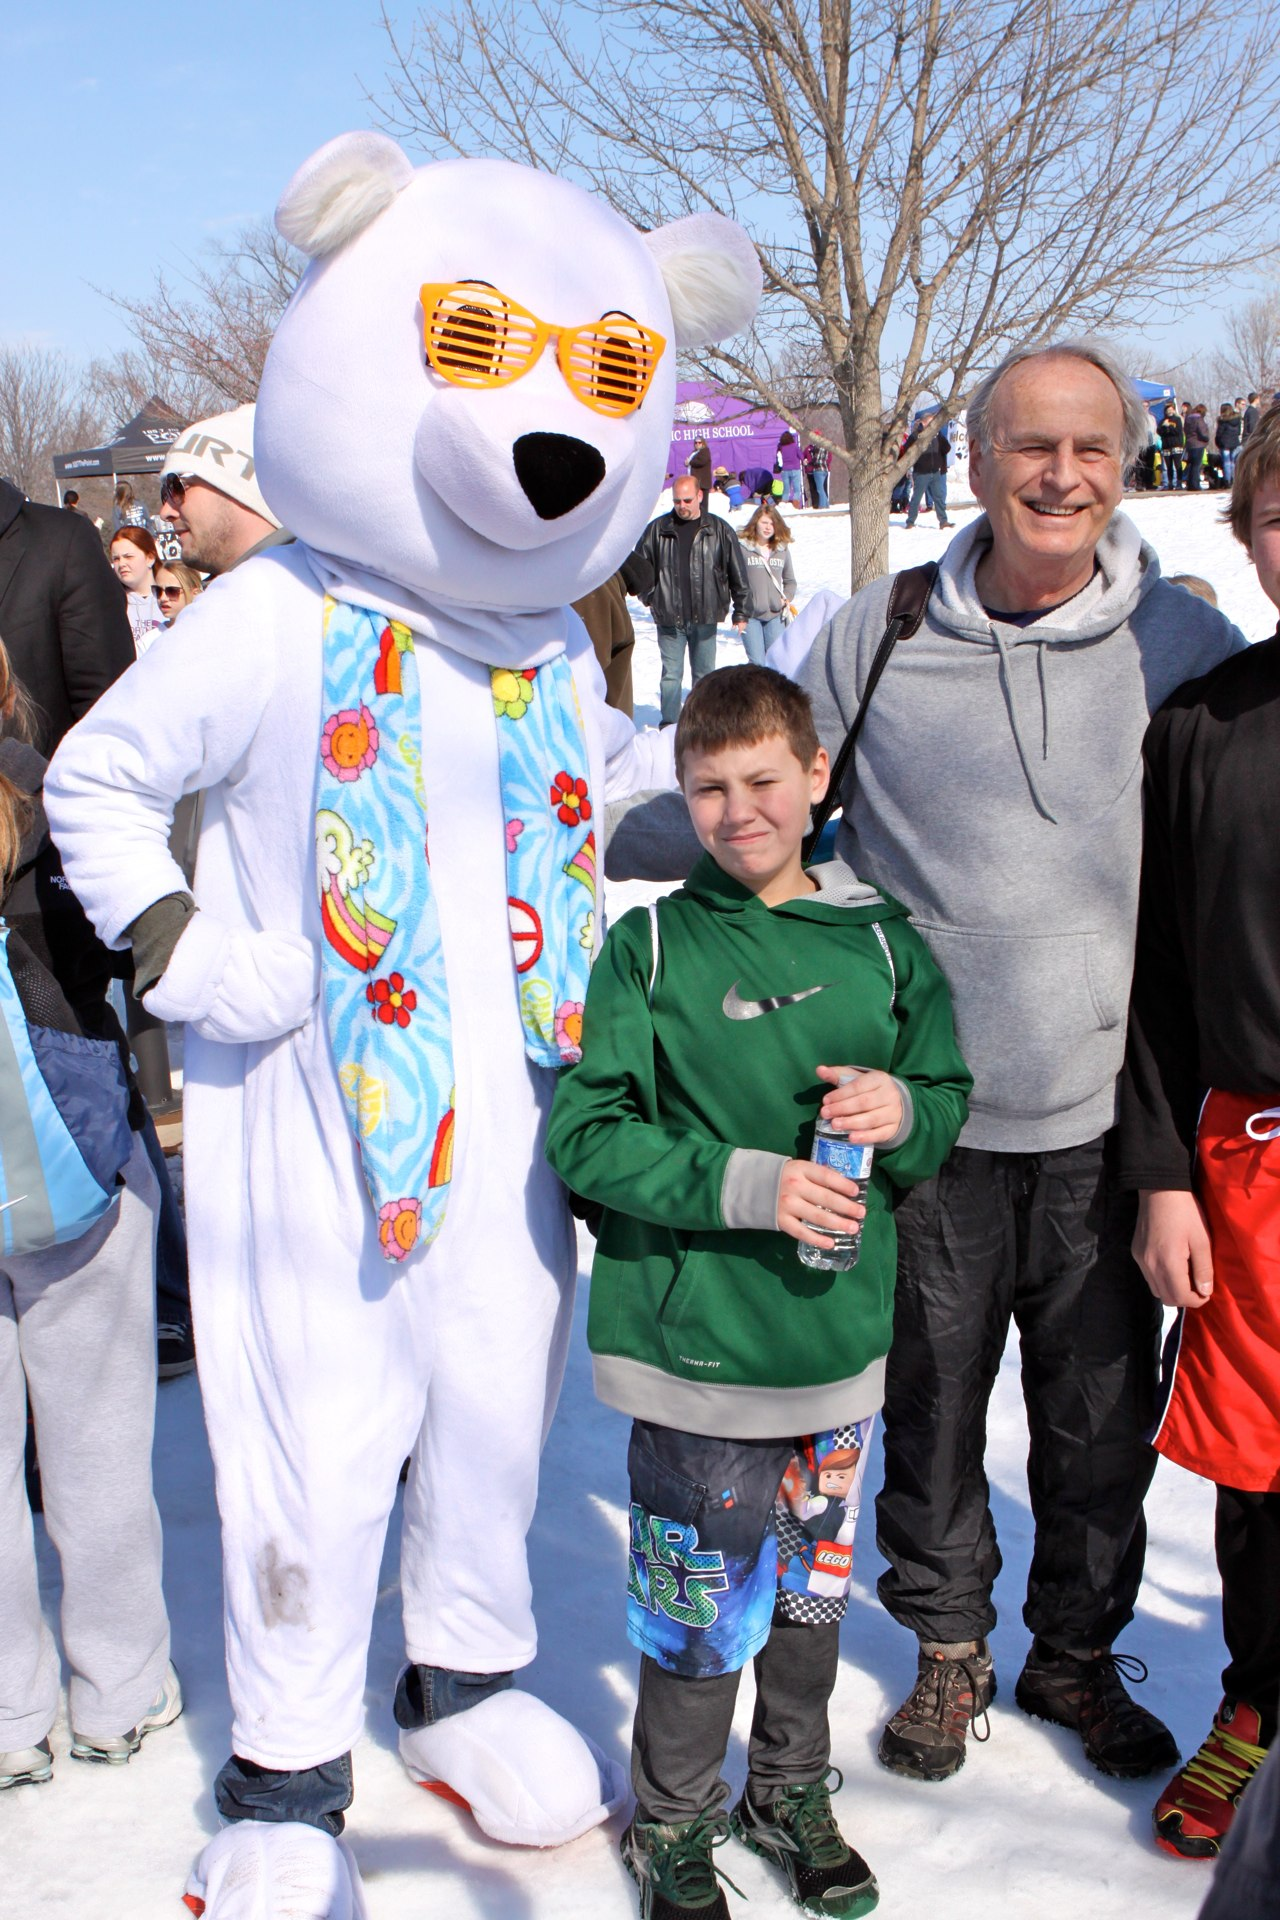 A mascot polar bear poses for a photo with a family at a Polar Plunge